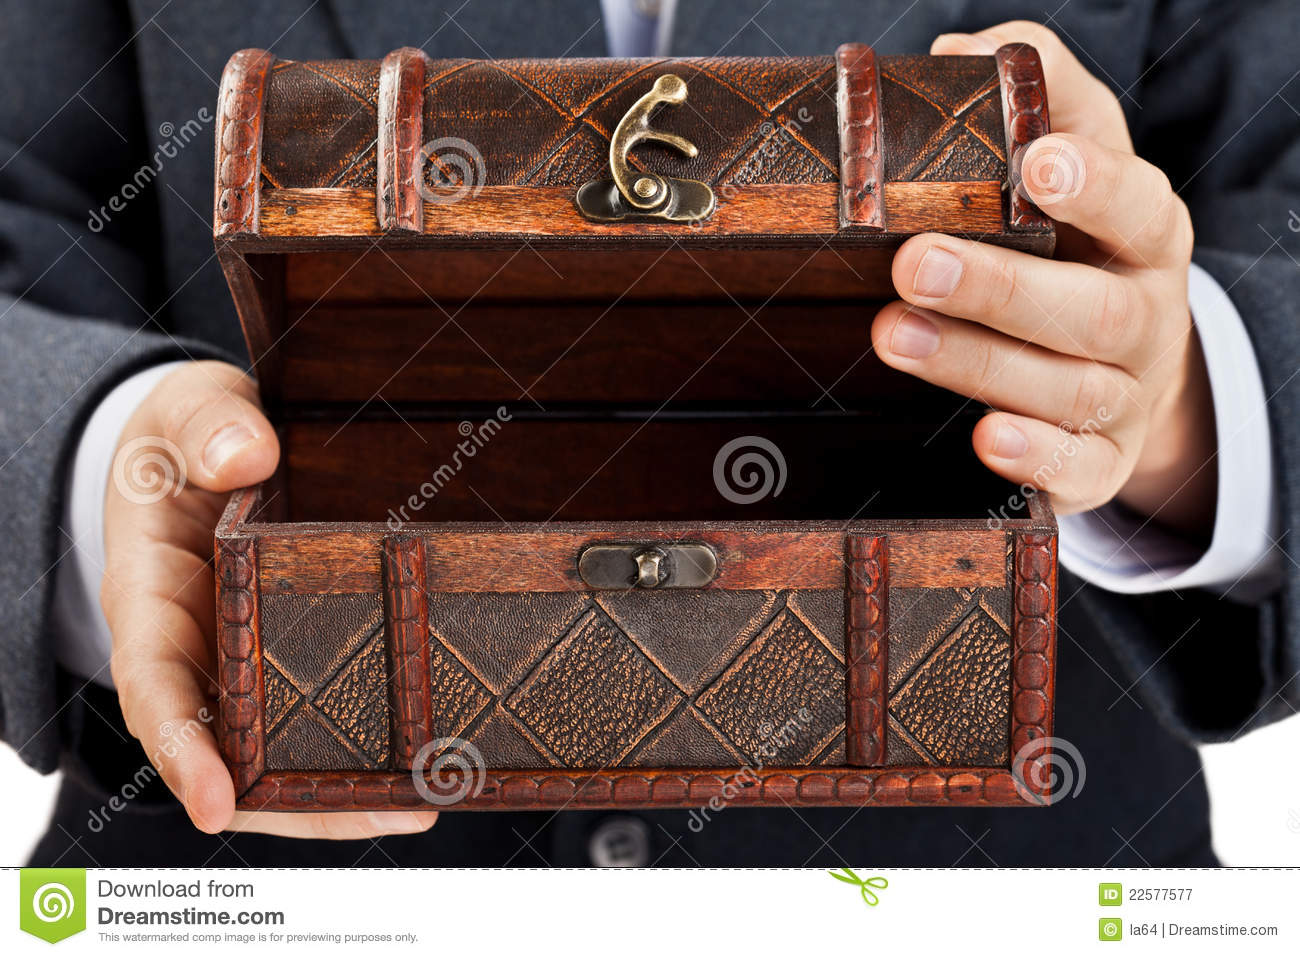 Truhe Antik Hand Holding Treasure Chest Stock Image - Image Of Holding